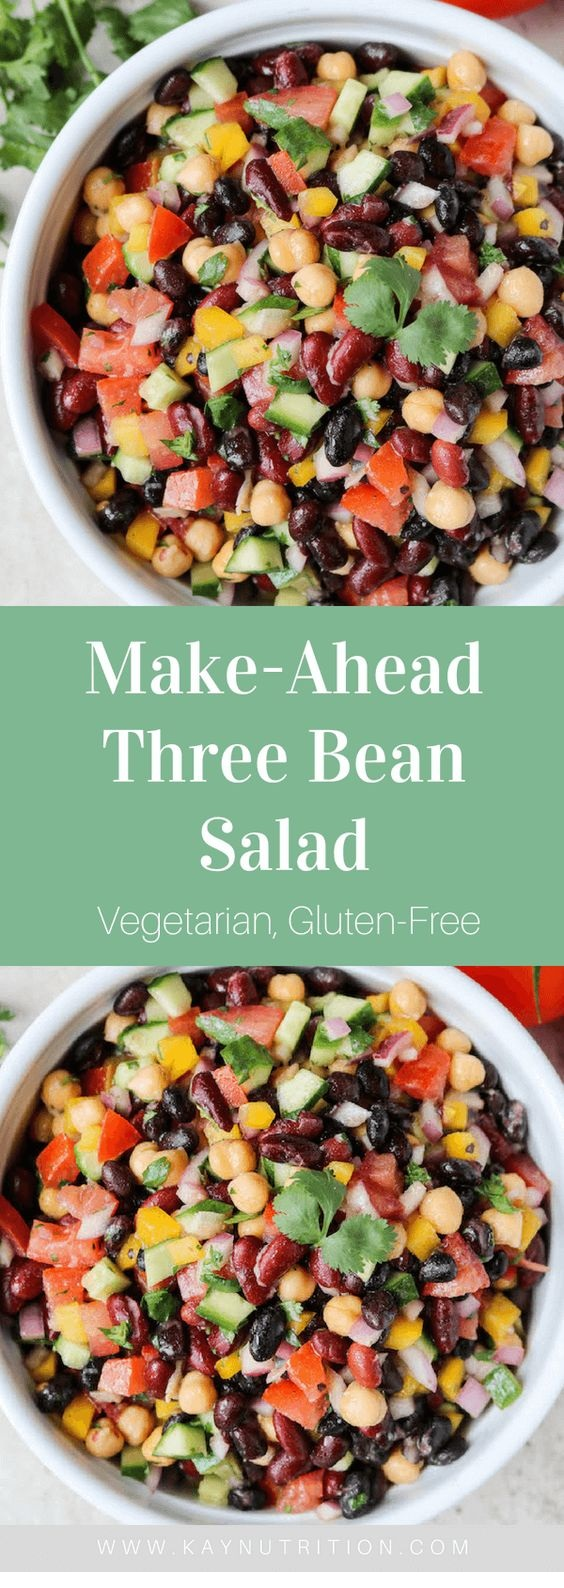 Make-Ahead Three Bean Salad